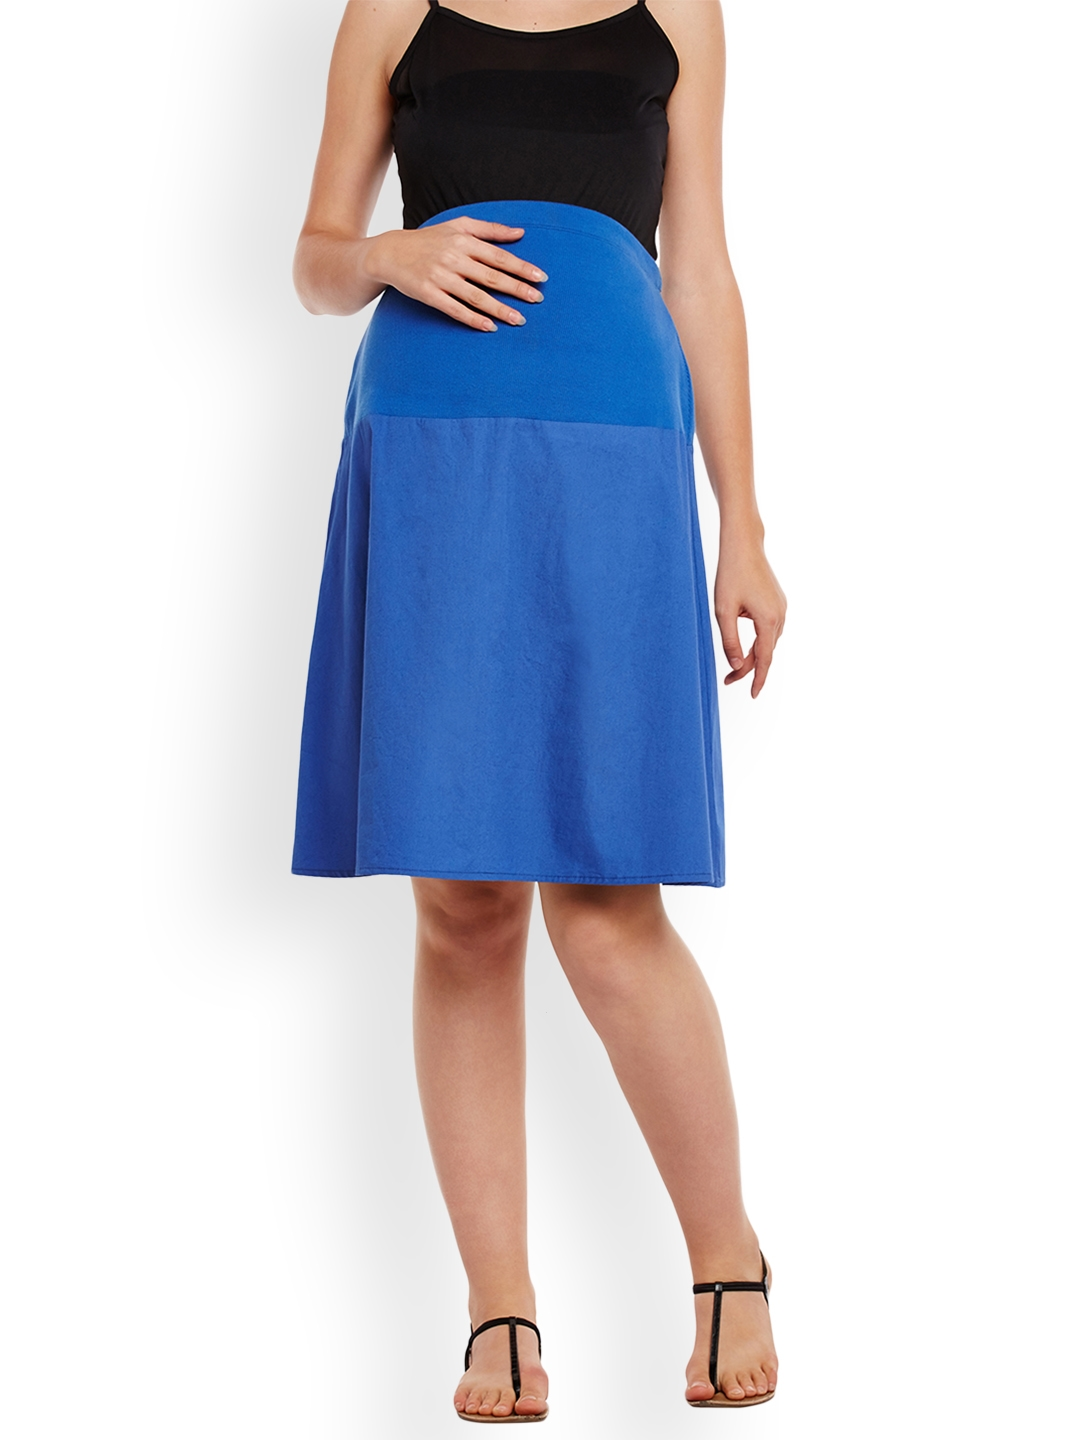 a78a9c9d9cea2 Buy Oxolloxo Blue Maternity Skirt - Skirts for Women 2168749 | Myntra